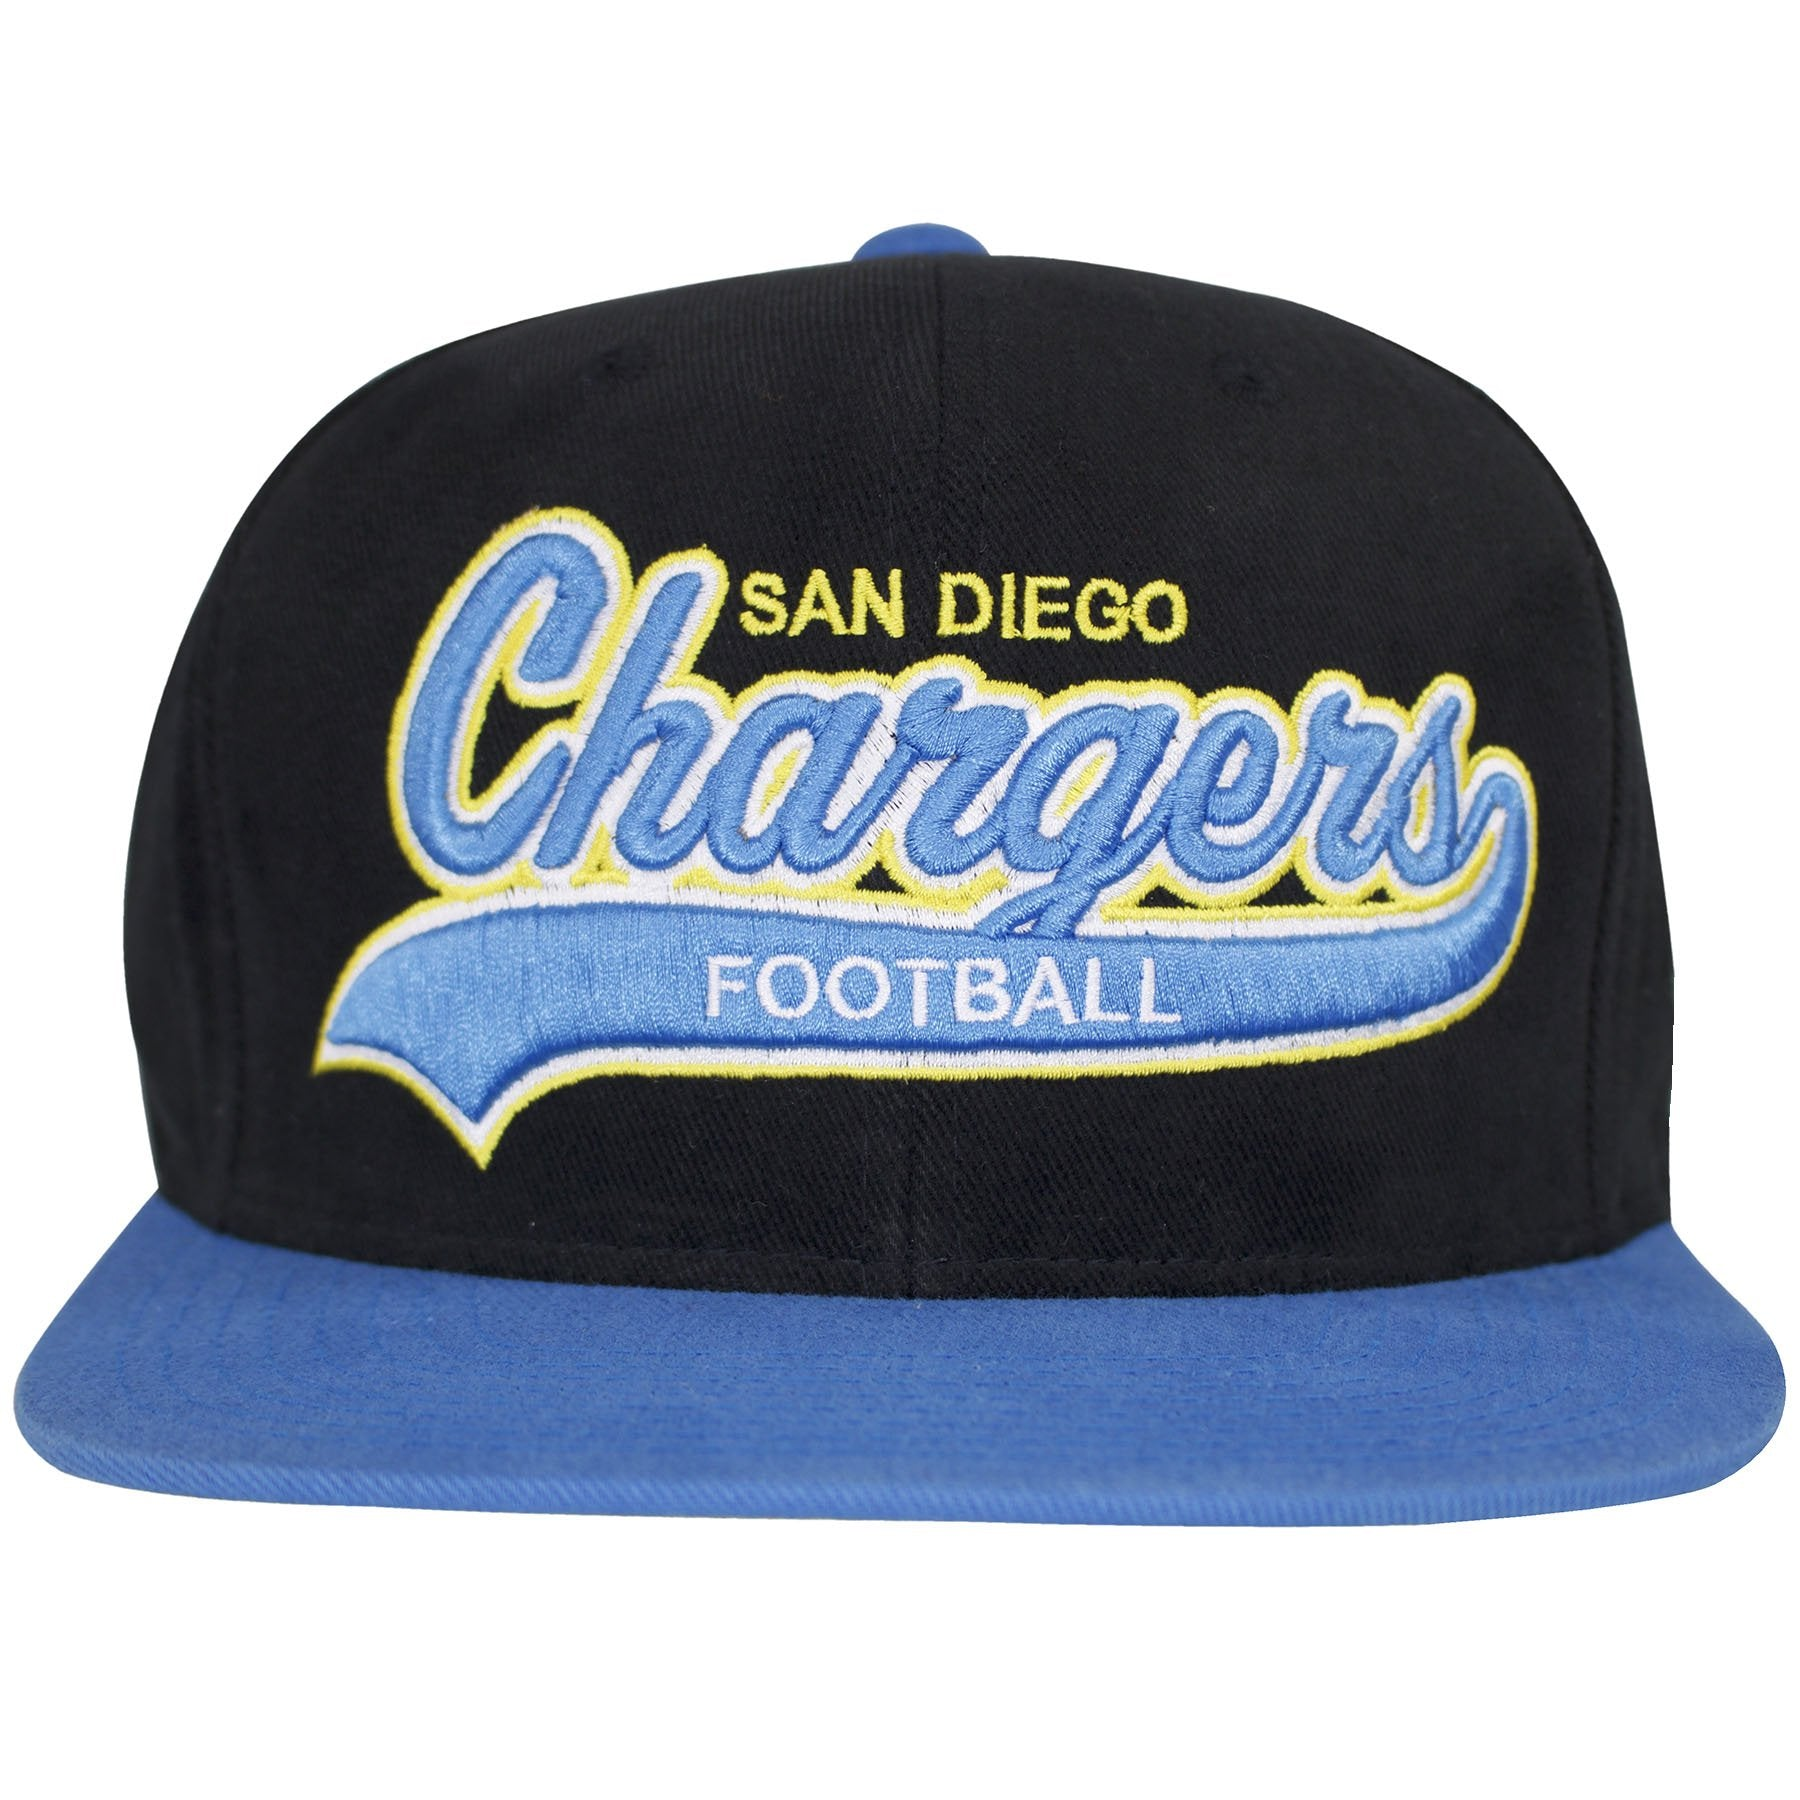 651bc8cad San Diego Chargers writing text can be seen embroidered in powder blue in  front of this